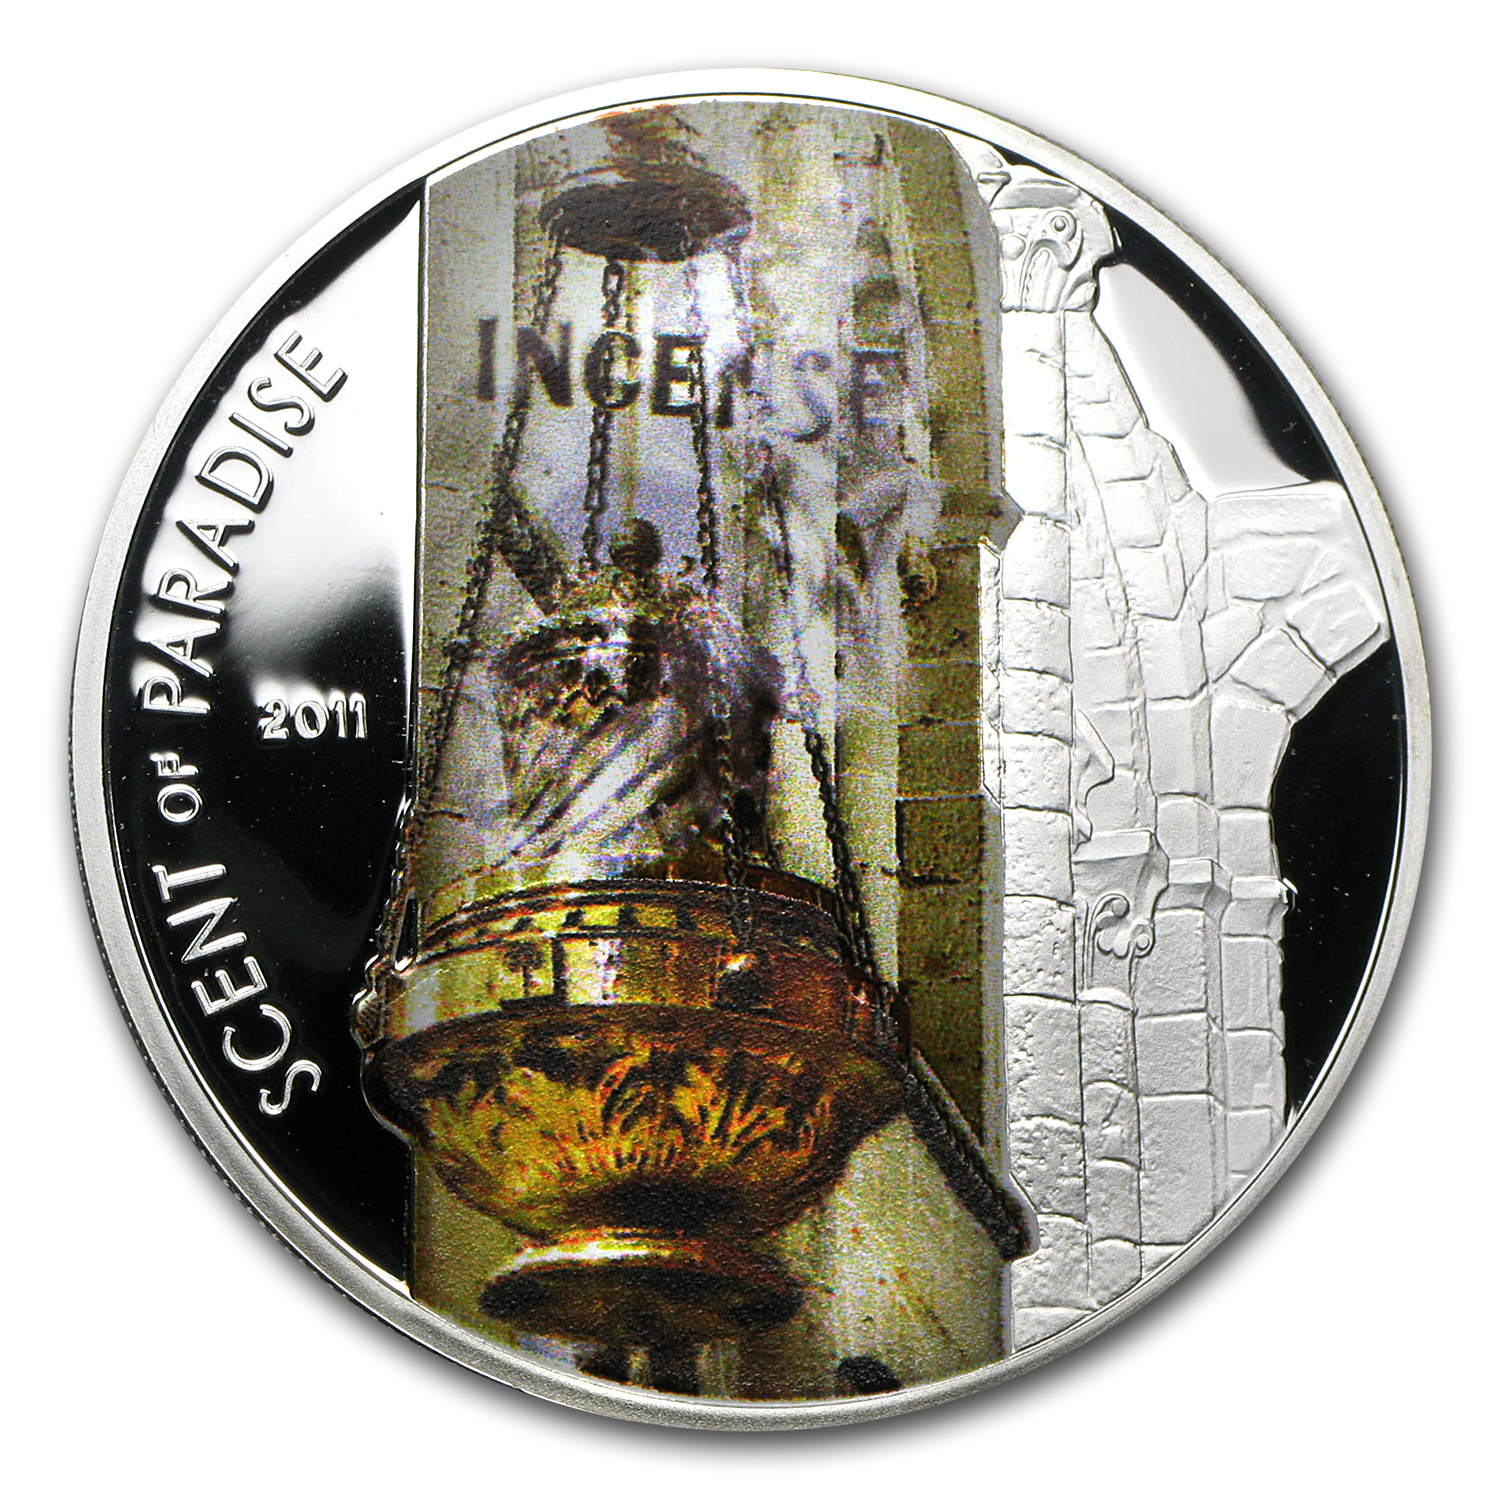 2011 Palau Proof Silver $5 Scent of Paradise Incense